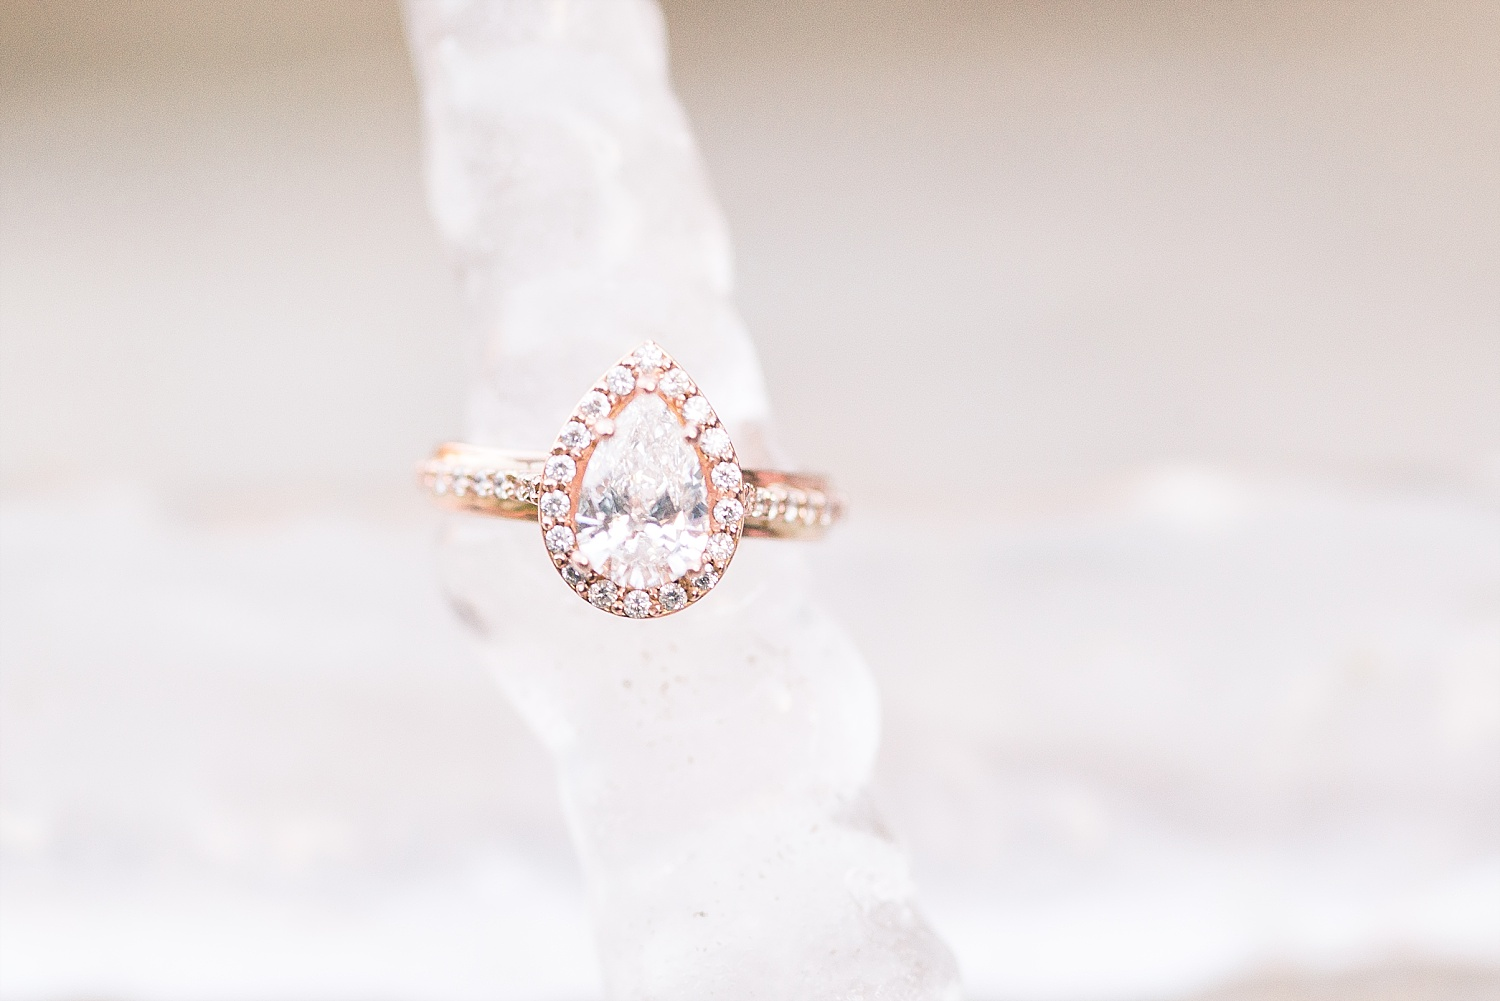 icy-engagement-ring